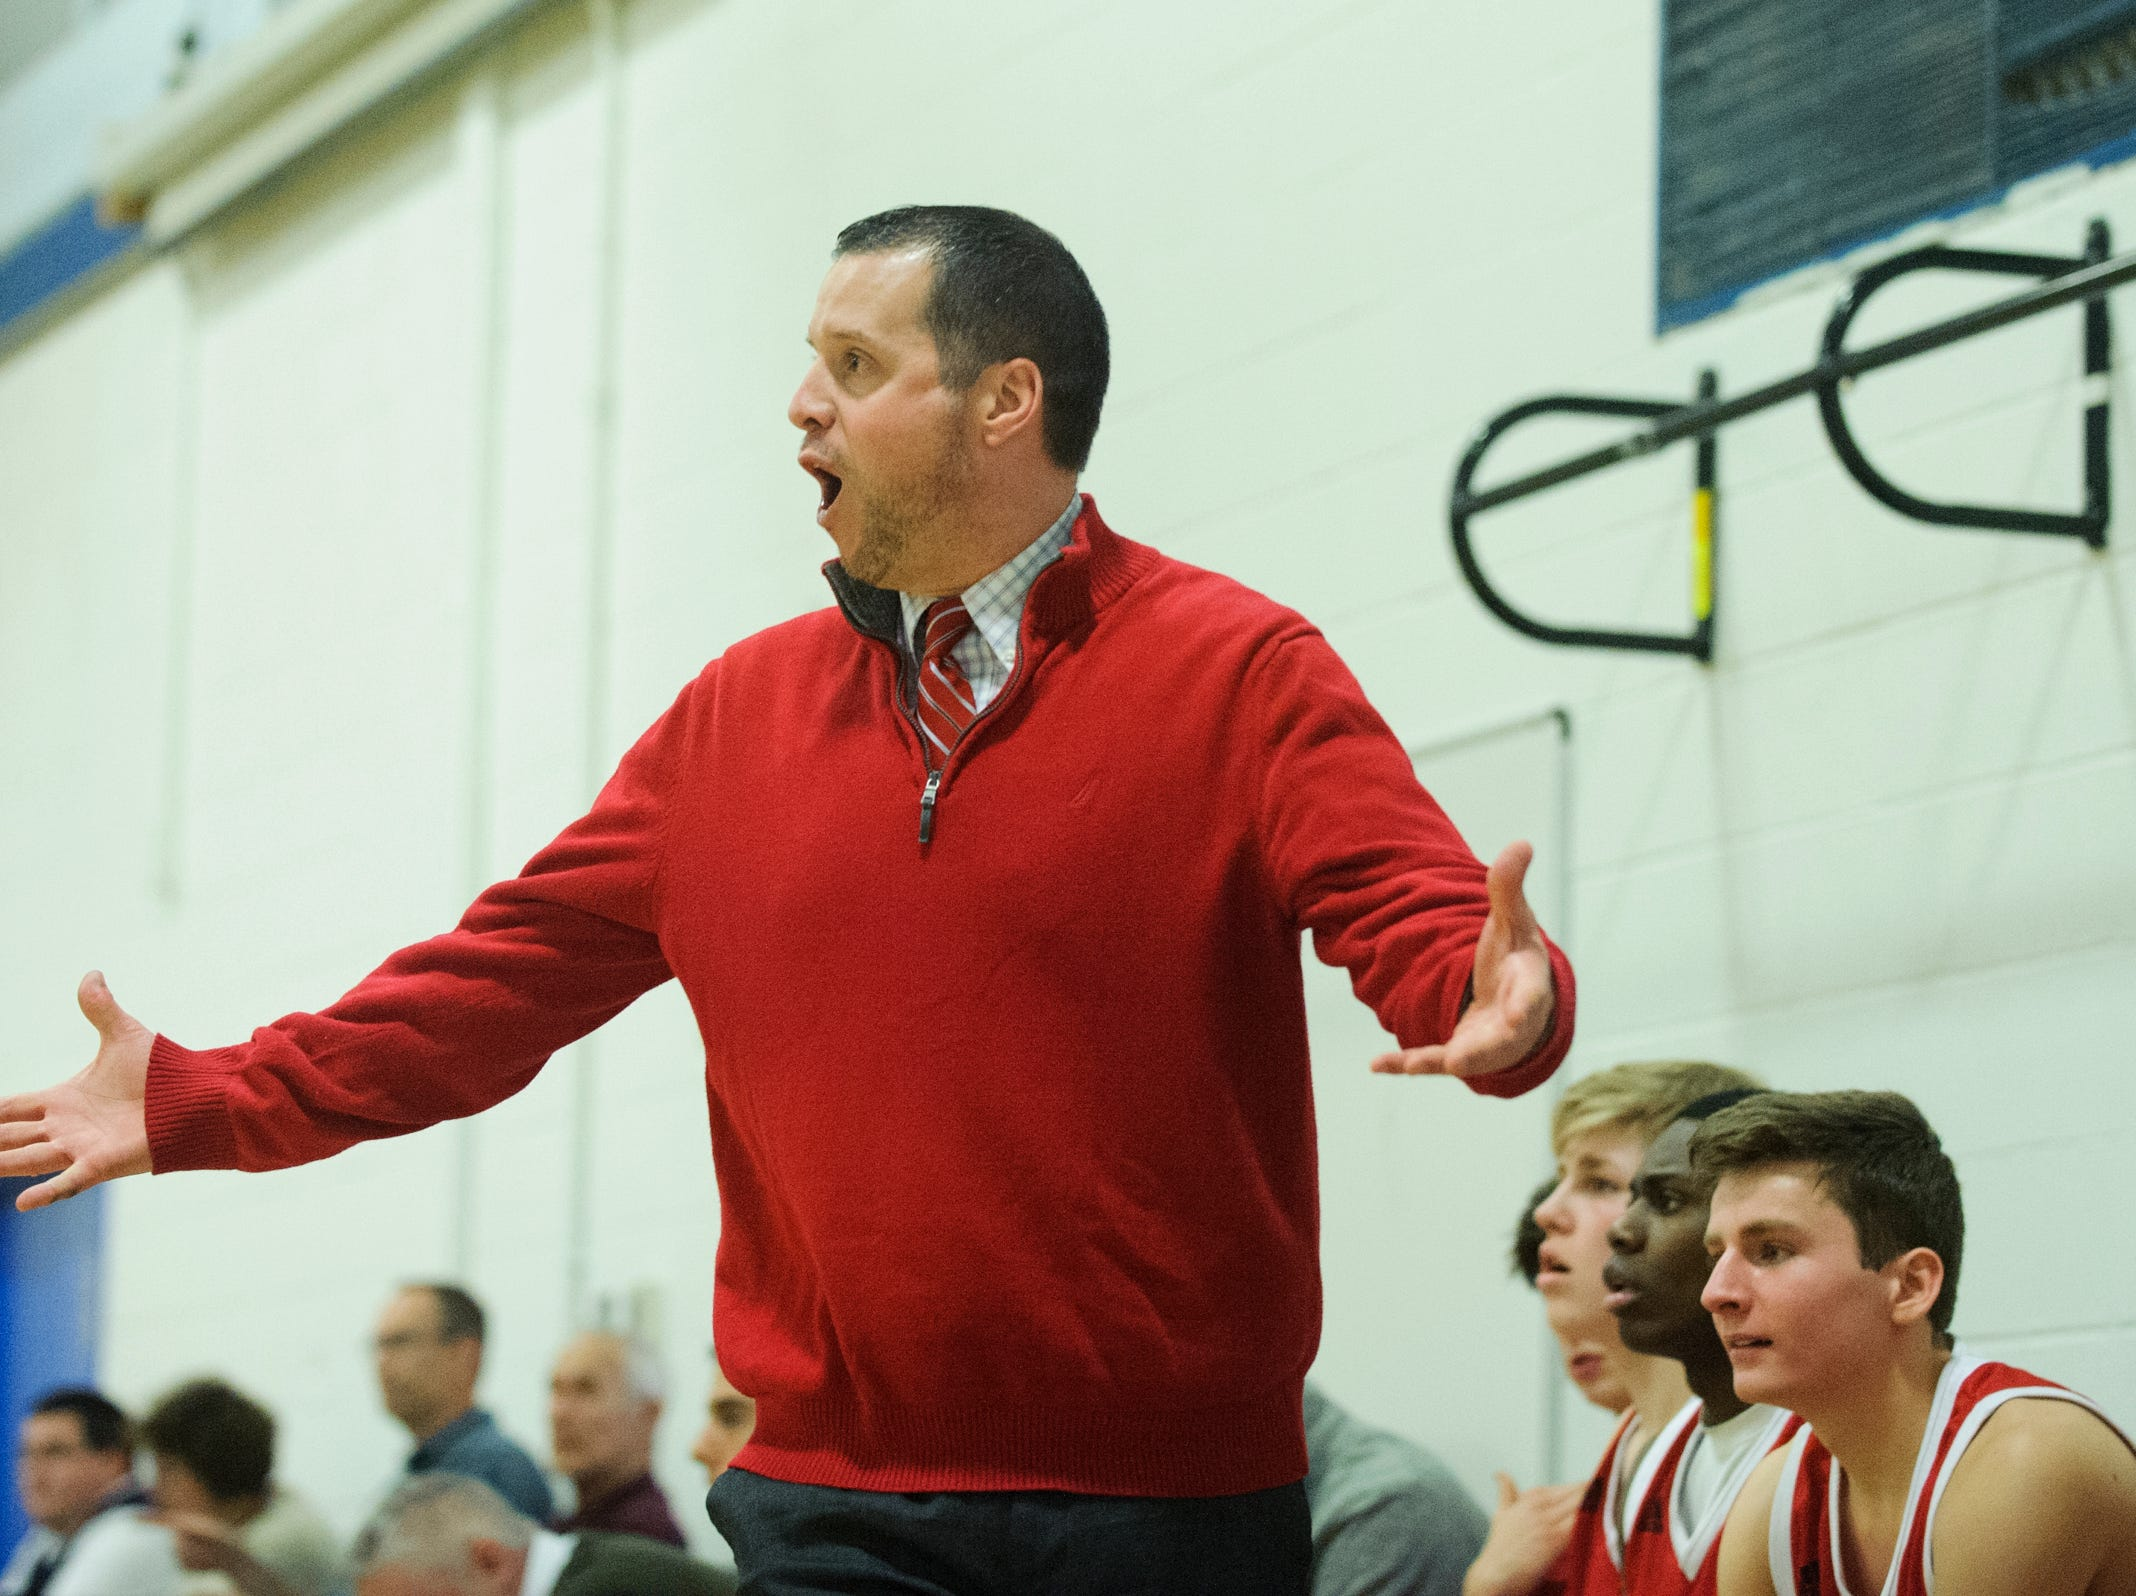 CVU head coach Michael Osborne reacts to a call on the court during the boys basketball game between the Champlain Valley Union Redhawks and the Mount Mansfield Cougars at MMU High School on Tuesday night January 22, 2019 in Jericho.